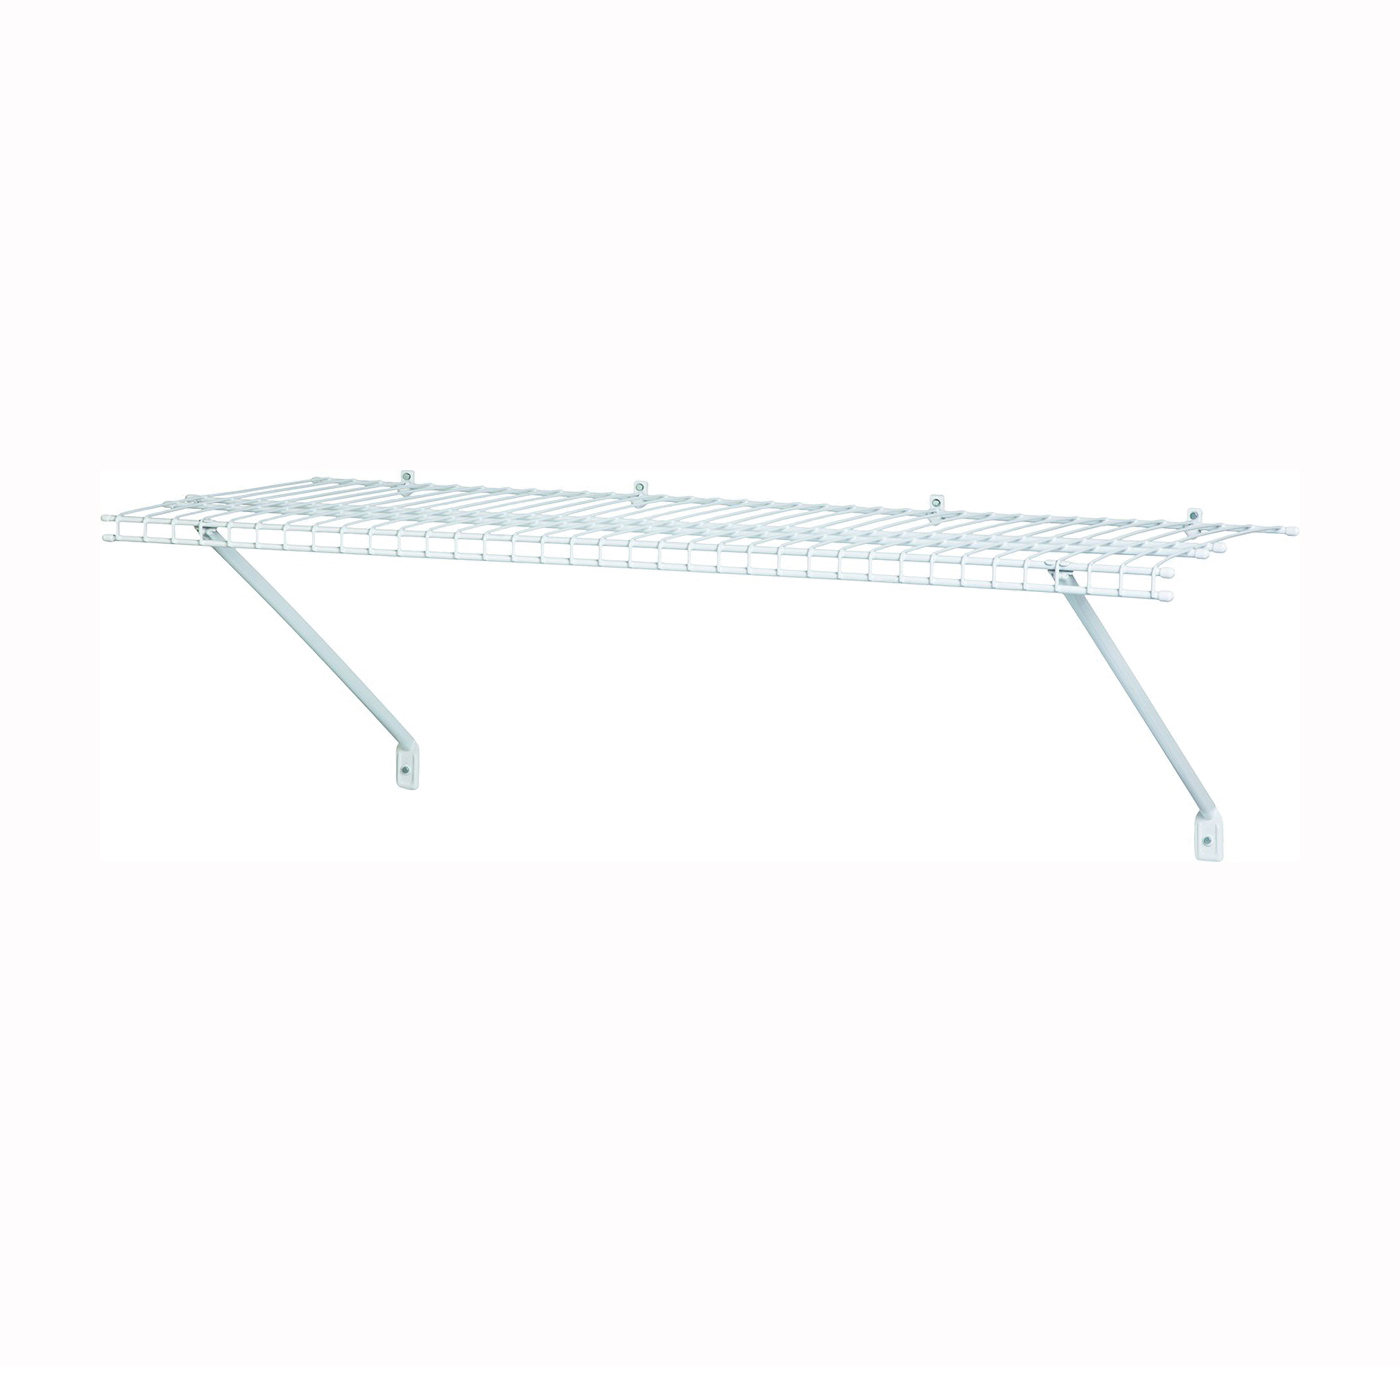 Picture of ClosetMaid 1021 Shelf Kit, 24 in L, 12 in W, Steel, White